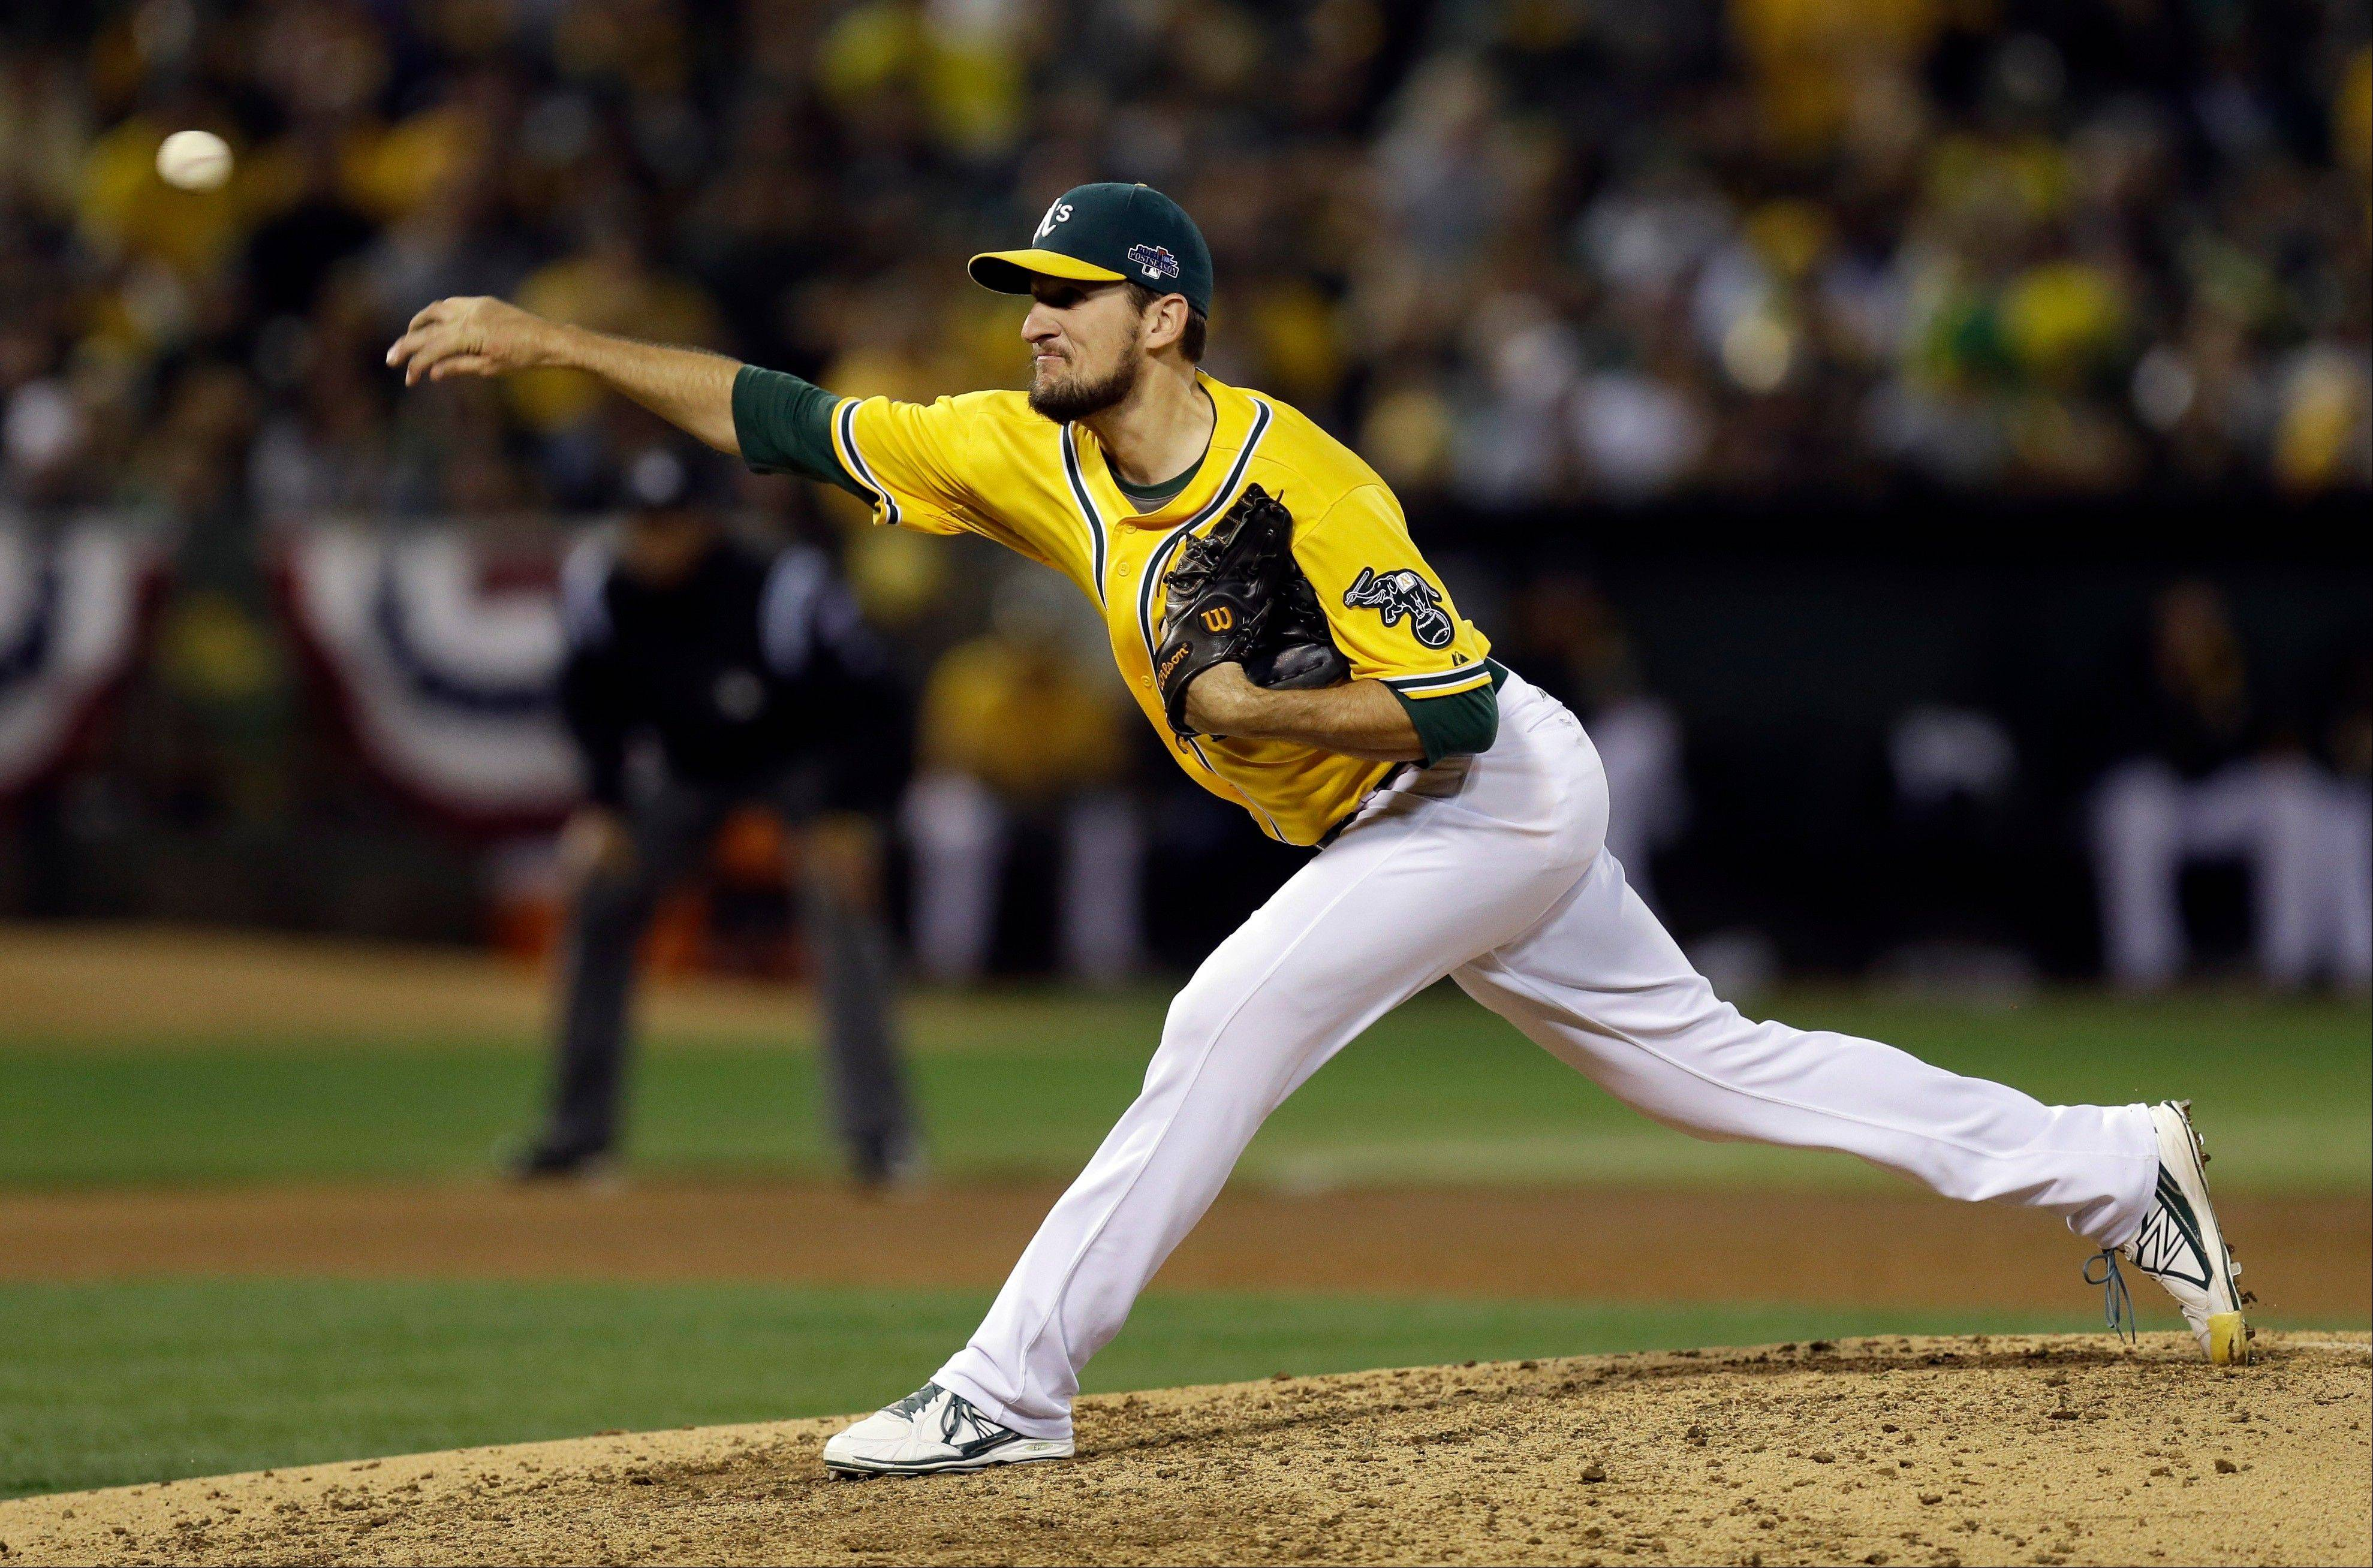 Oakland relief pitcher Dan Otero delivers in the seventh inning of Game 5 Thursday at home.